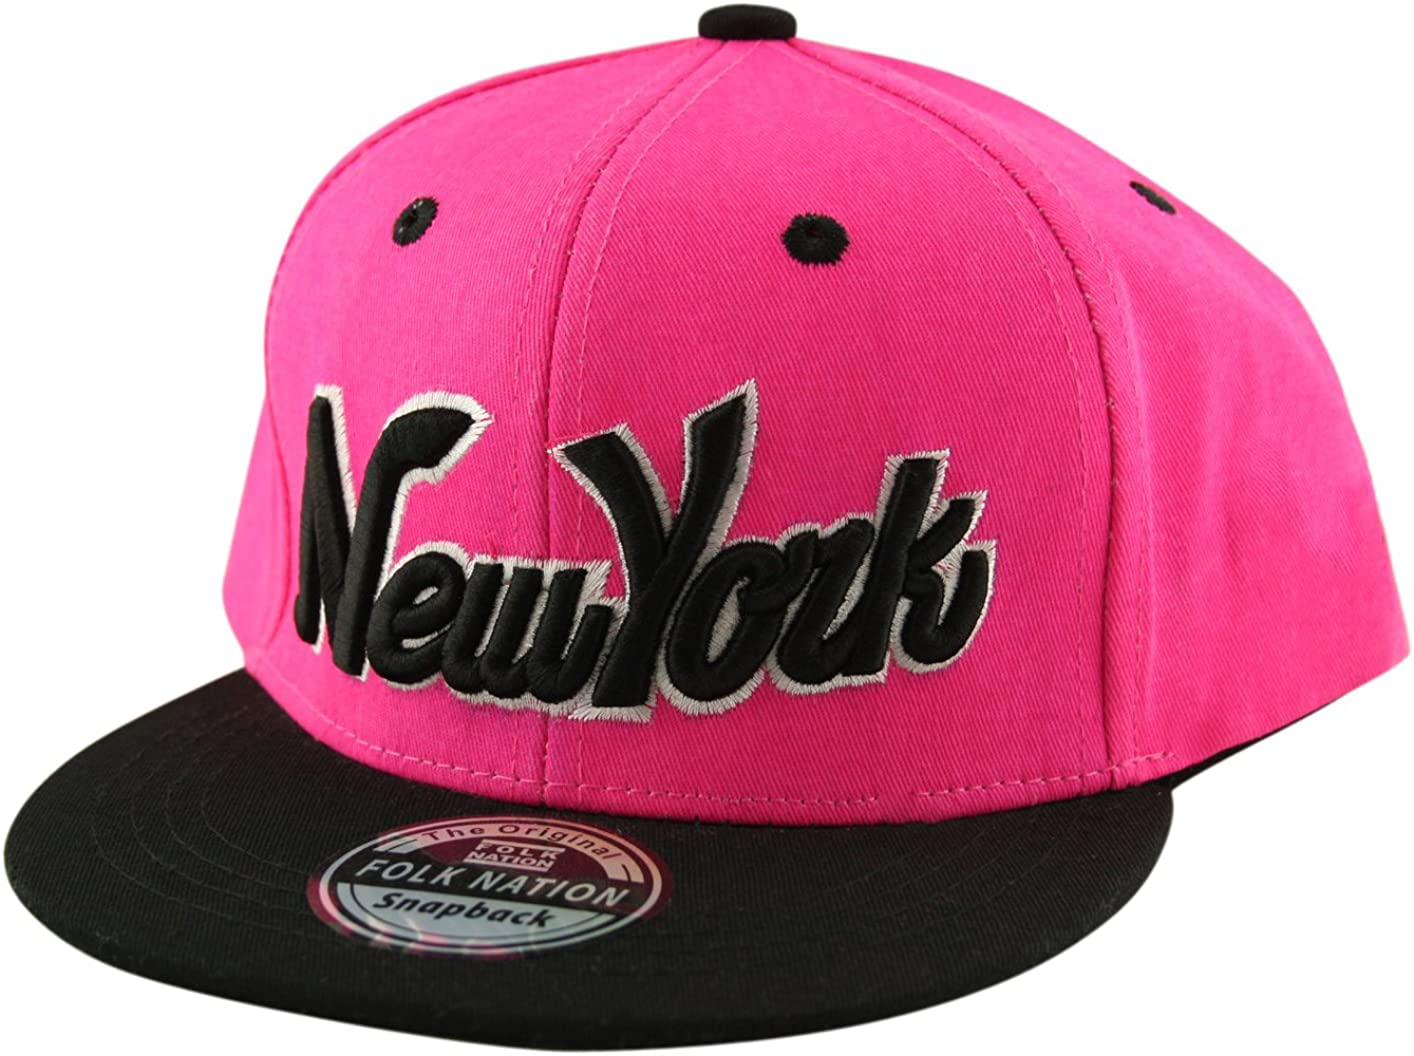 One Size Adjustable Snapback Baseball Cap Hat Youth Kids Boys Girls New York NY Script Lots of colours available!